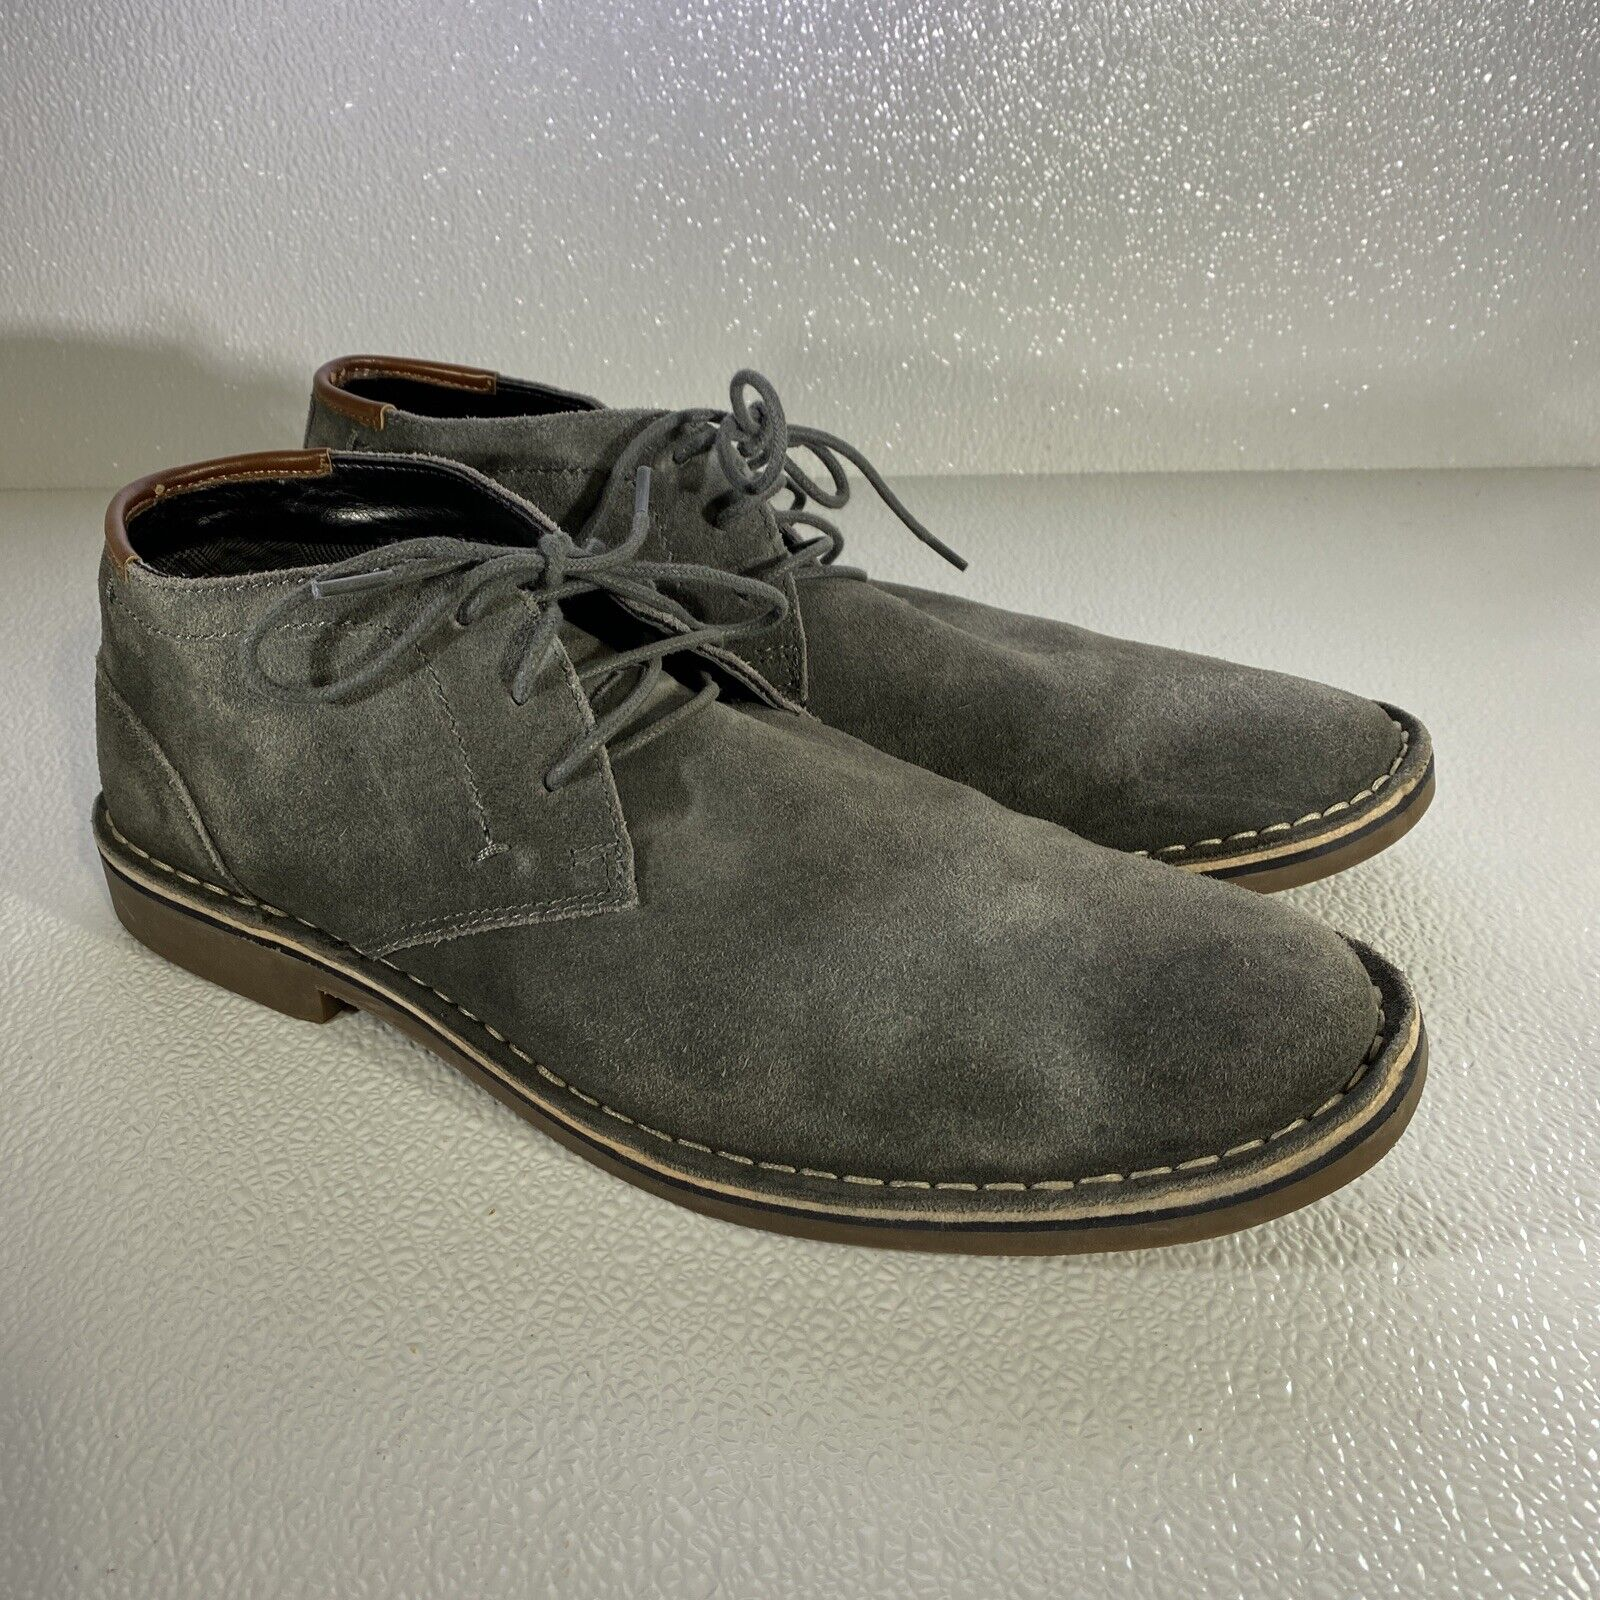 Kenneth Cole Reaction Desert Wind Men's Oxford Shoes Grey Size 13M Textile Lined